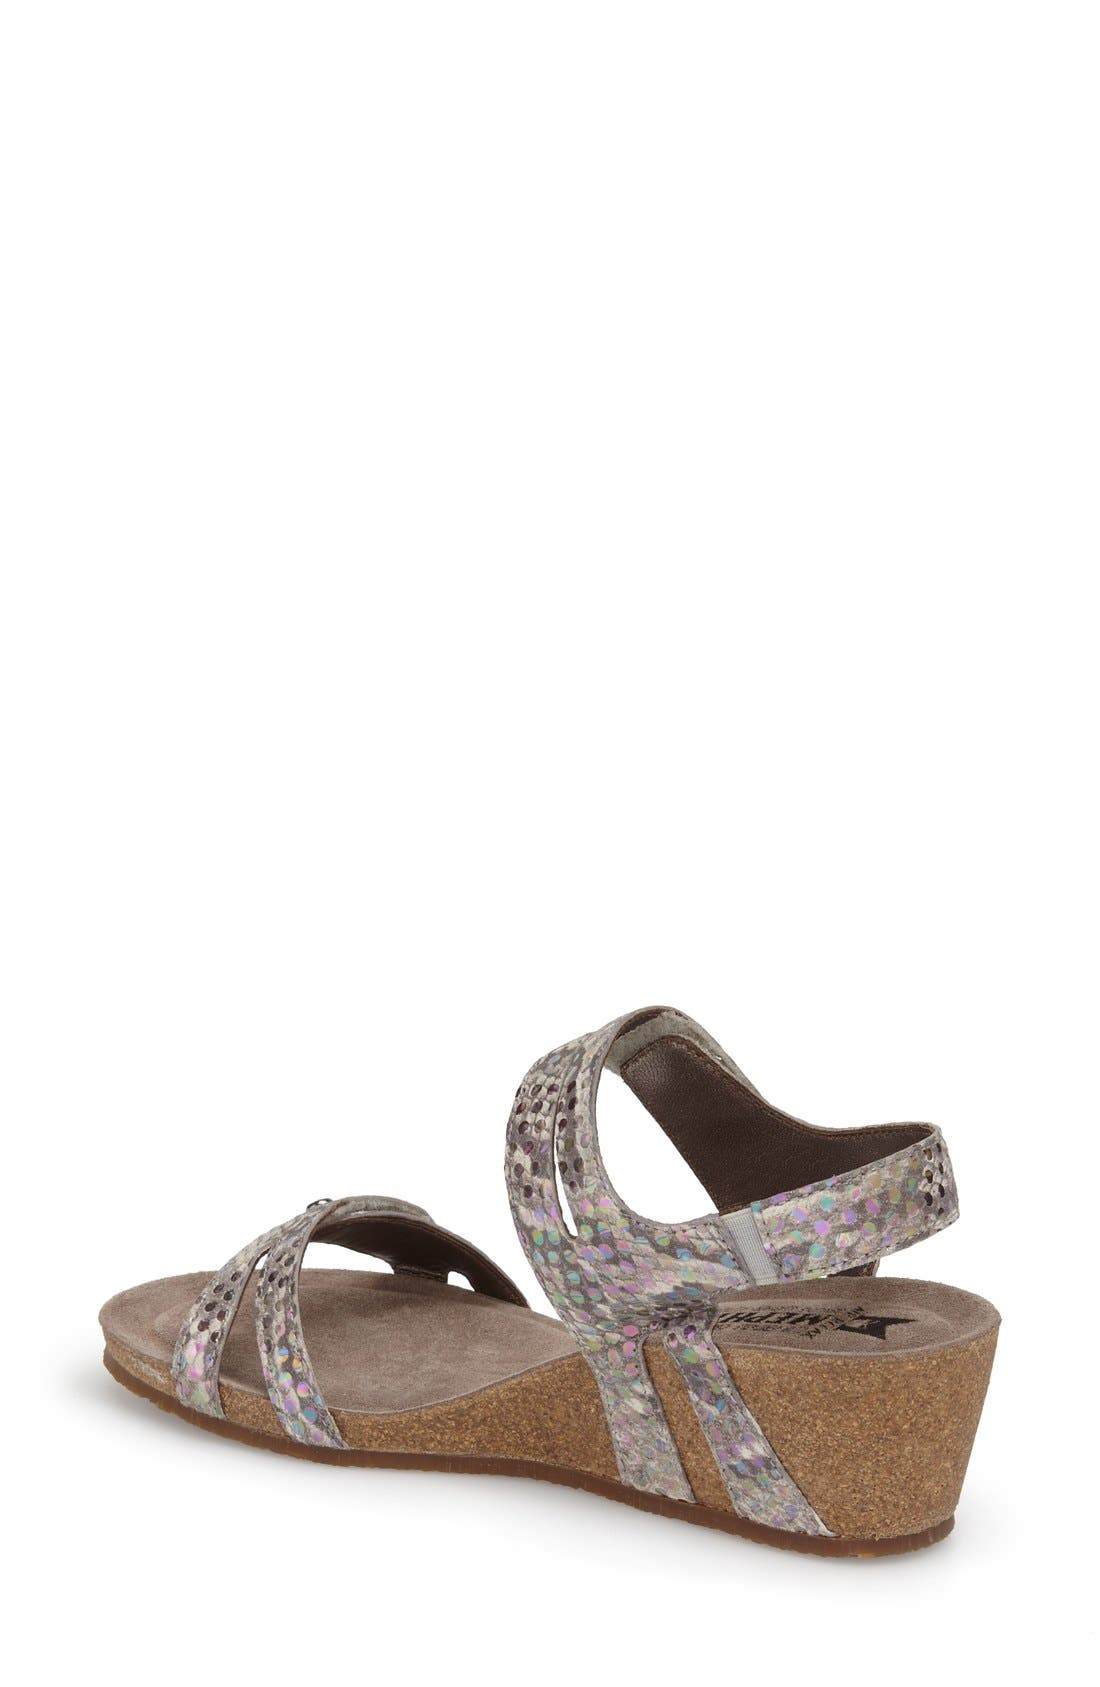 'Minoa' Wedge Sandal,                             Alternate thumbnail 2, color,                             Light Grey Mimosa